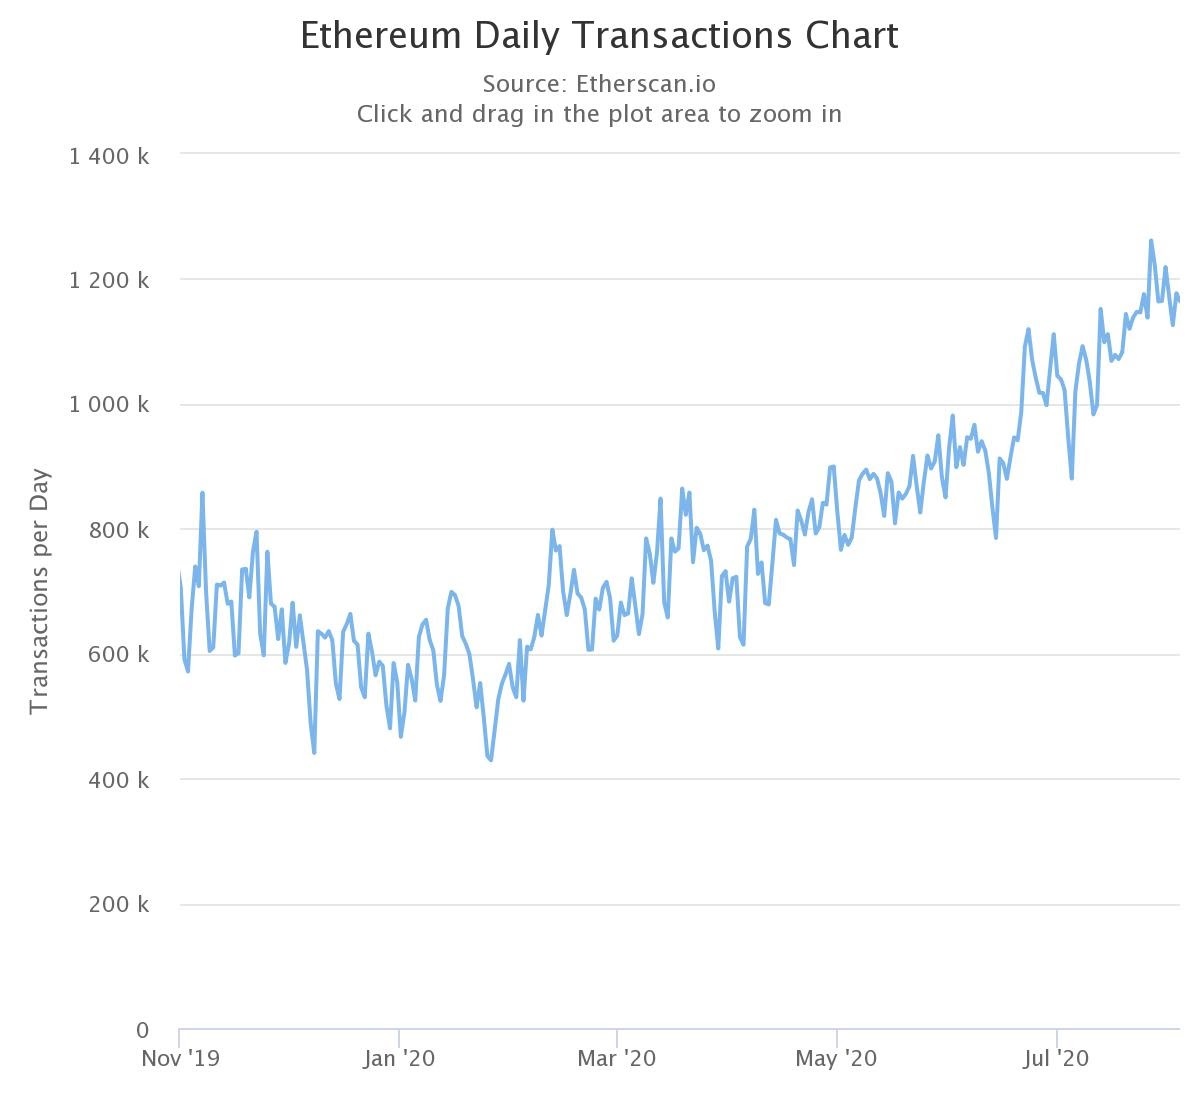 Daily transaction chart from Ethereum